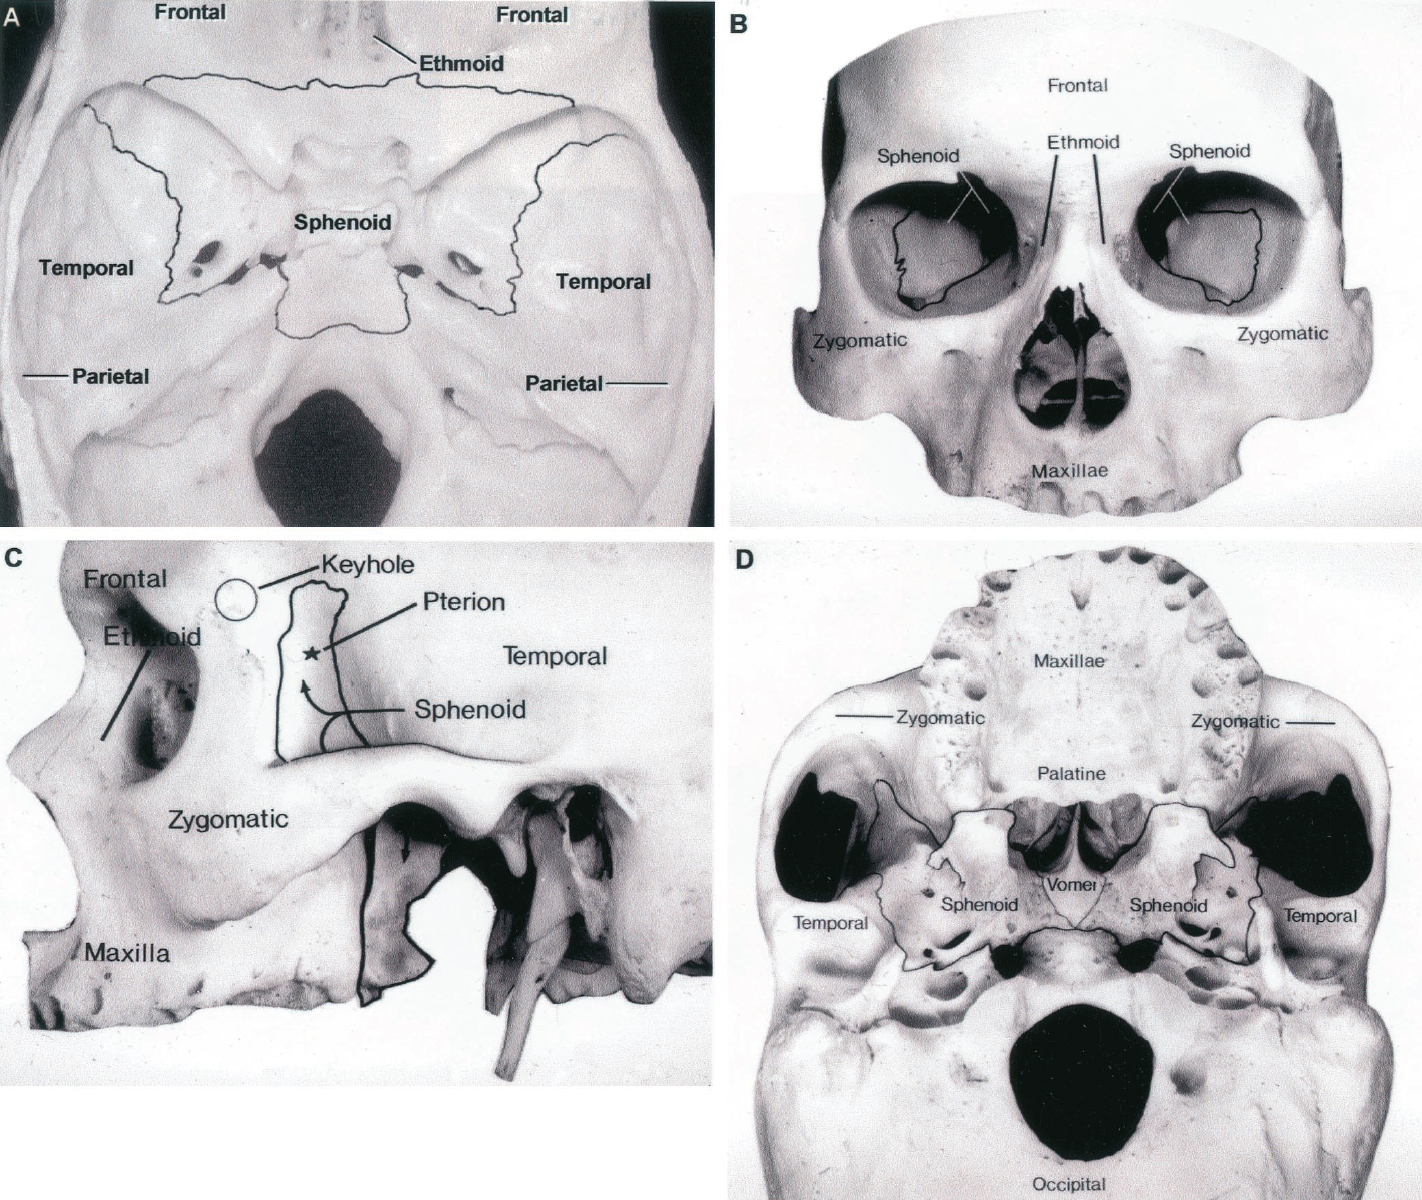 Figure 8.5 (A–D). Osseous relationships of the sphenoid bone. The sphenoid bone is outlined in each view. A, superior view. B, anterior view. C, lateral view. D, inferior view. For., foramen; Lat., lateral; Med., medial; Pal., palato-; Sup., superior; Temp., temporal. (From, Rhoton AL Jr, Hardy DG, Chambers SM: Microsurgical anatomy and dissection of the sphenoid bone, cavernous sinus and sellar region. Surg Neurol 12:63–104, 1979 [21].)